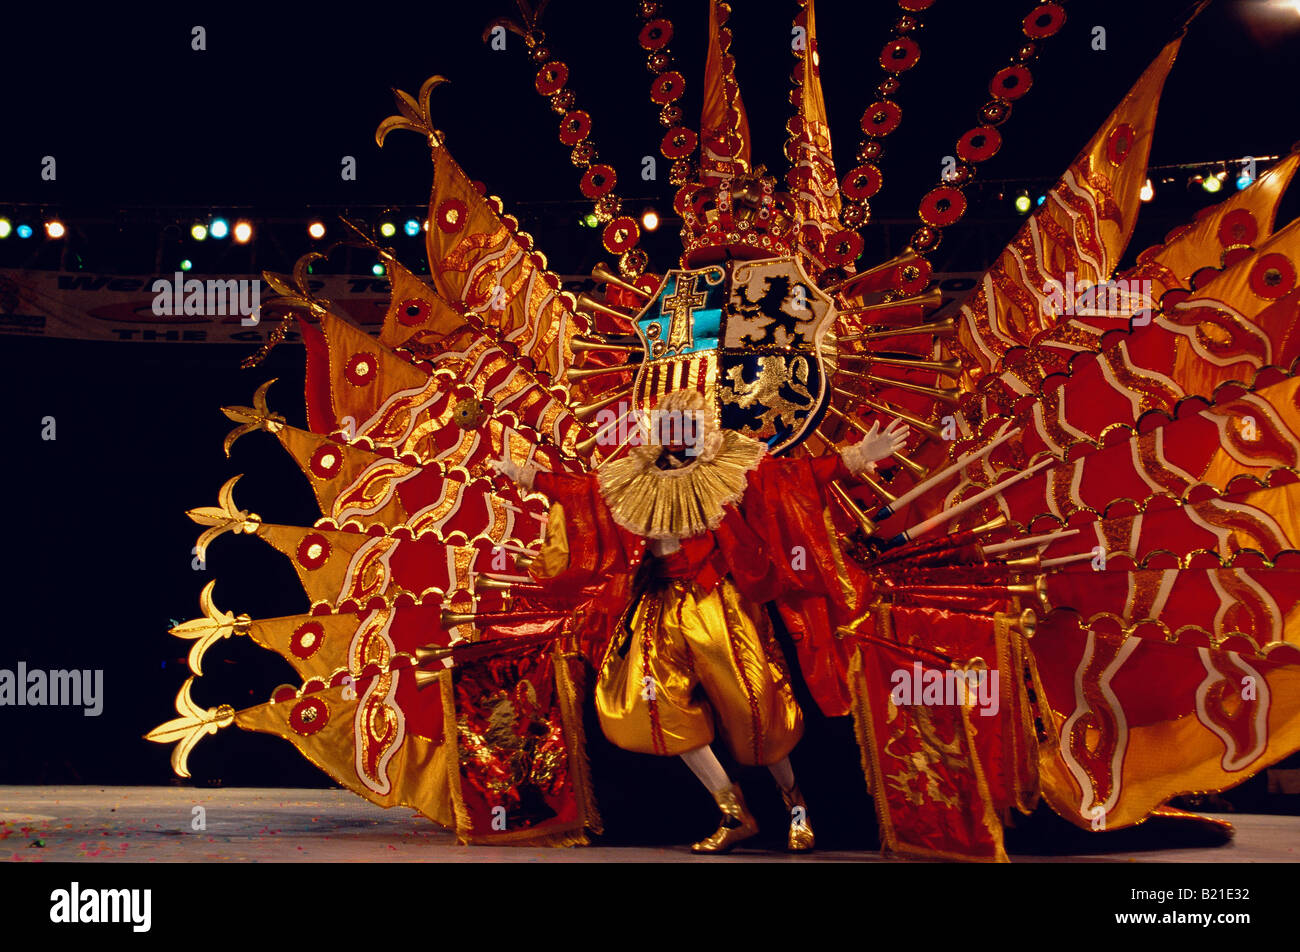 Kings and Queens Costume Parade Dimanche Gras Carnival Port of Spain Trinidad - Stock Image